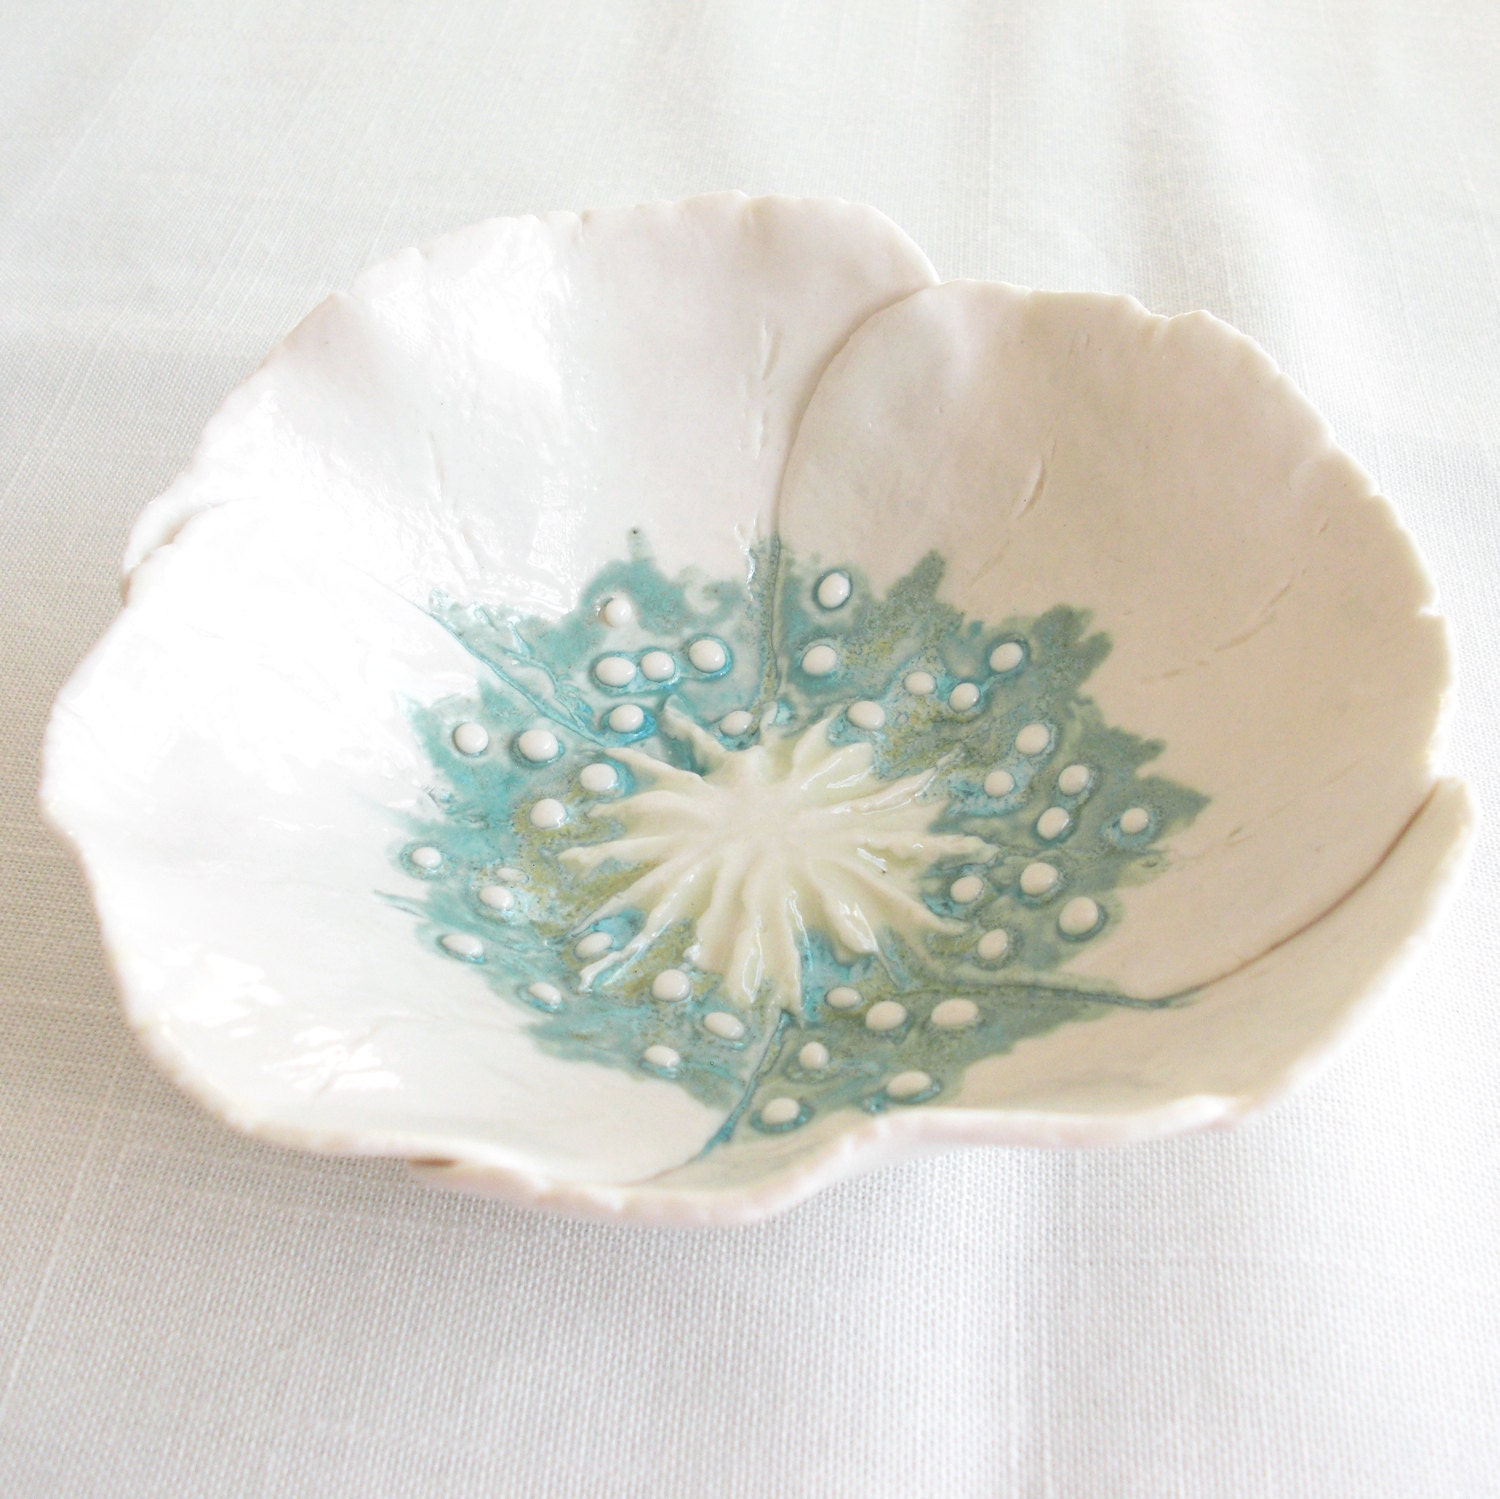 Handmade to order white porcelain poppy bowl with aqua and lime ceramic glazes - VanillaKiln